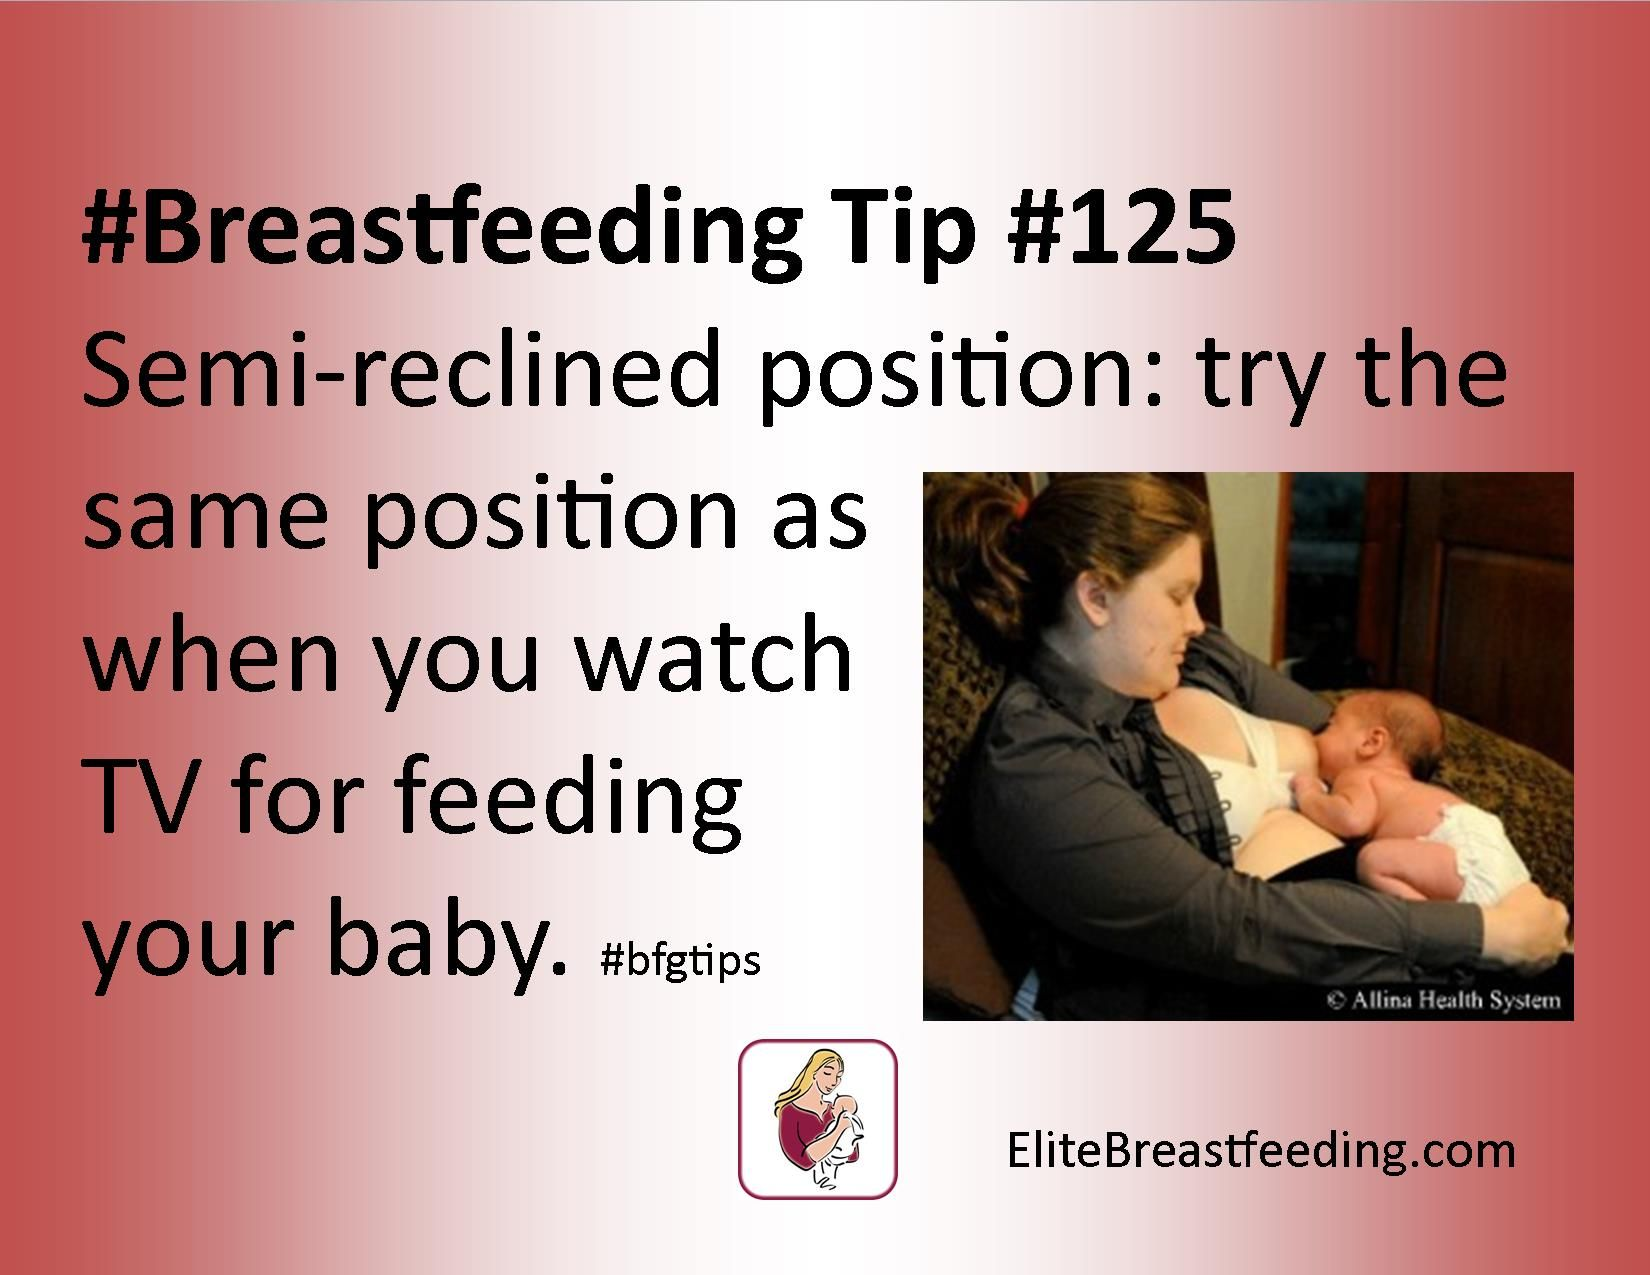 #Breastfeeding Tip #125 Semi-reclined position try the same position as when  sc 1 st  Pinterest & Breastfeeding Tip #125 Semi-reclined position: try the same ... islam-shia.org